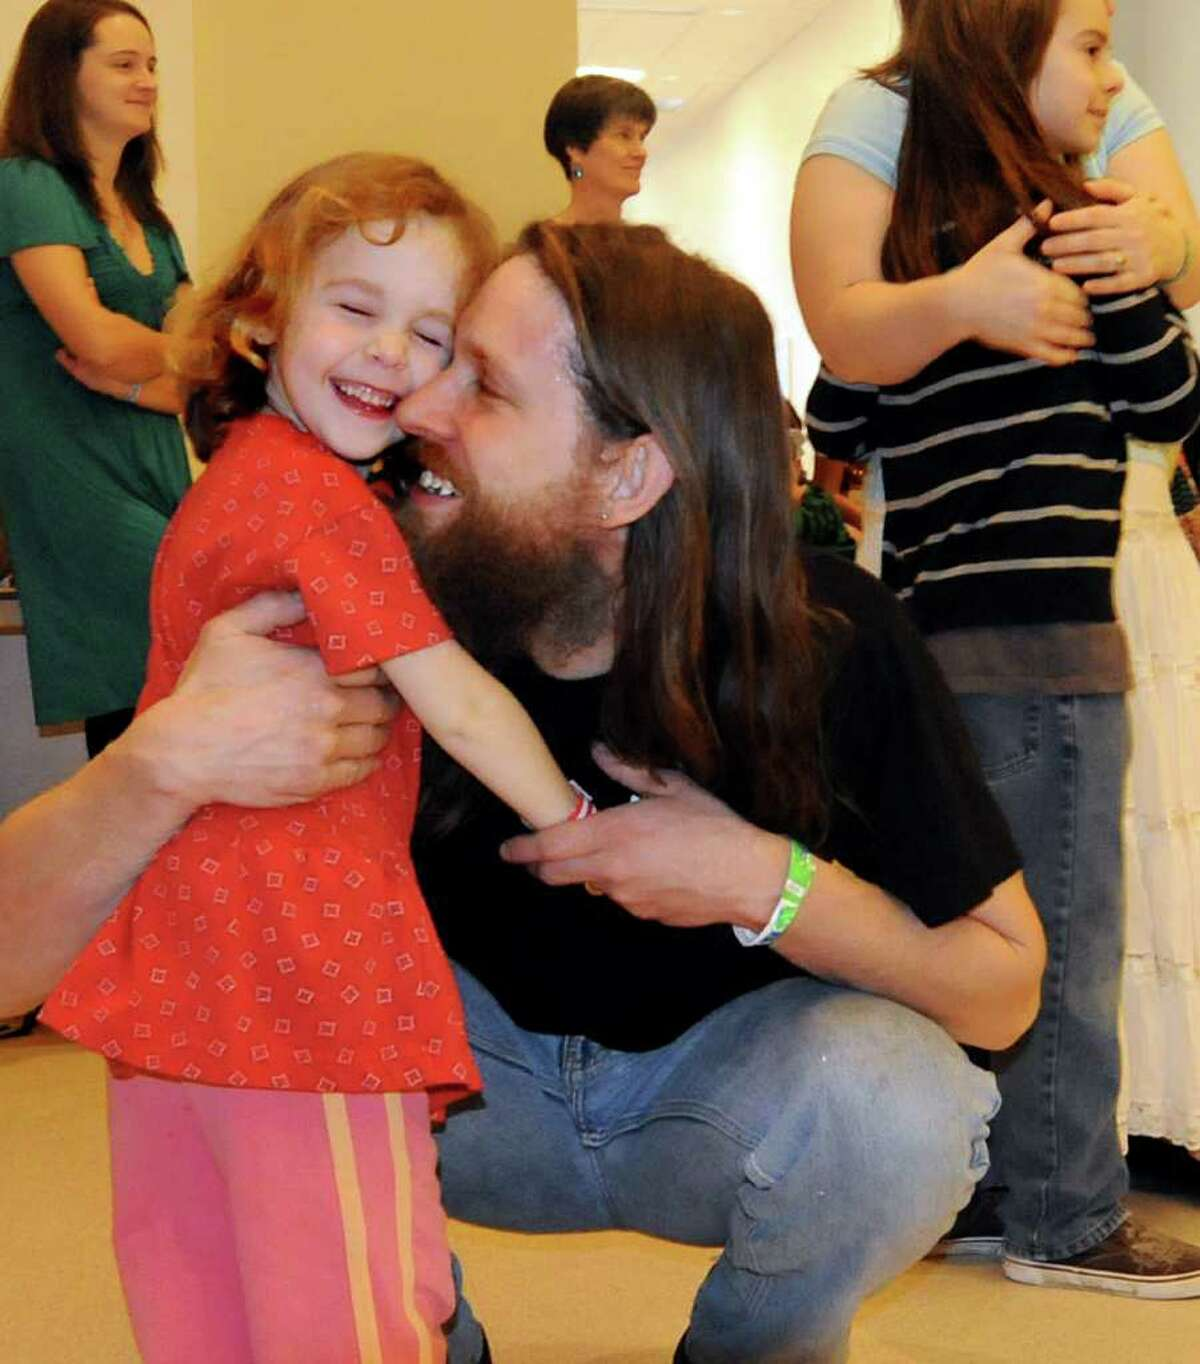 Nadia Tell, 4, of Albany hugs her dad, Robin, after they dance together at Swing Dance for Kids during the Flurry on Saturday, Feb. 19, 2011, at Saratoga Springs City Center in Saratoga Springs. It continues Sunday. (Cindy Schultz / Times Union)